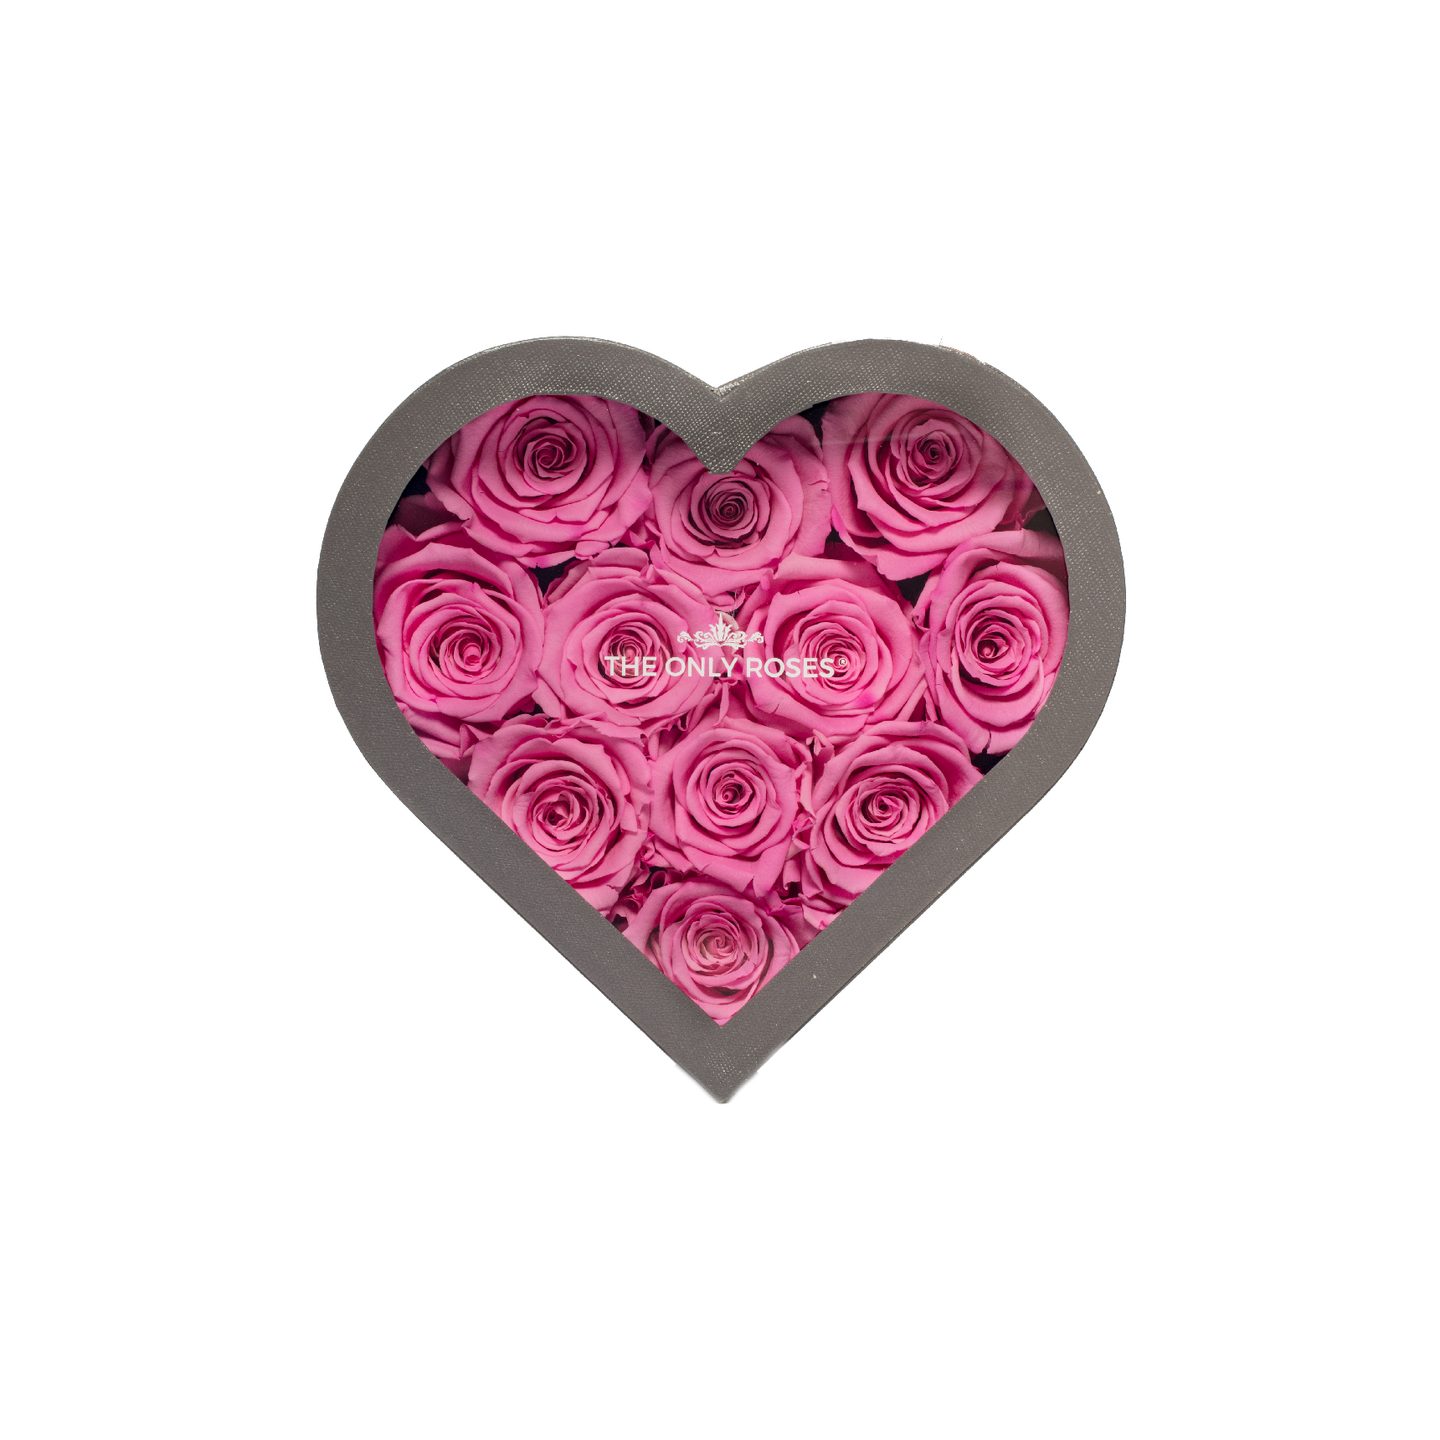 Pink Preserved Roses | Small Heart Classic Grey Box - The Only Roses